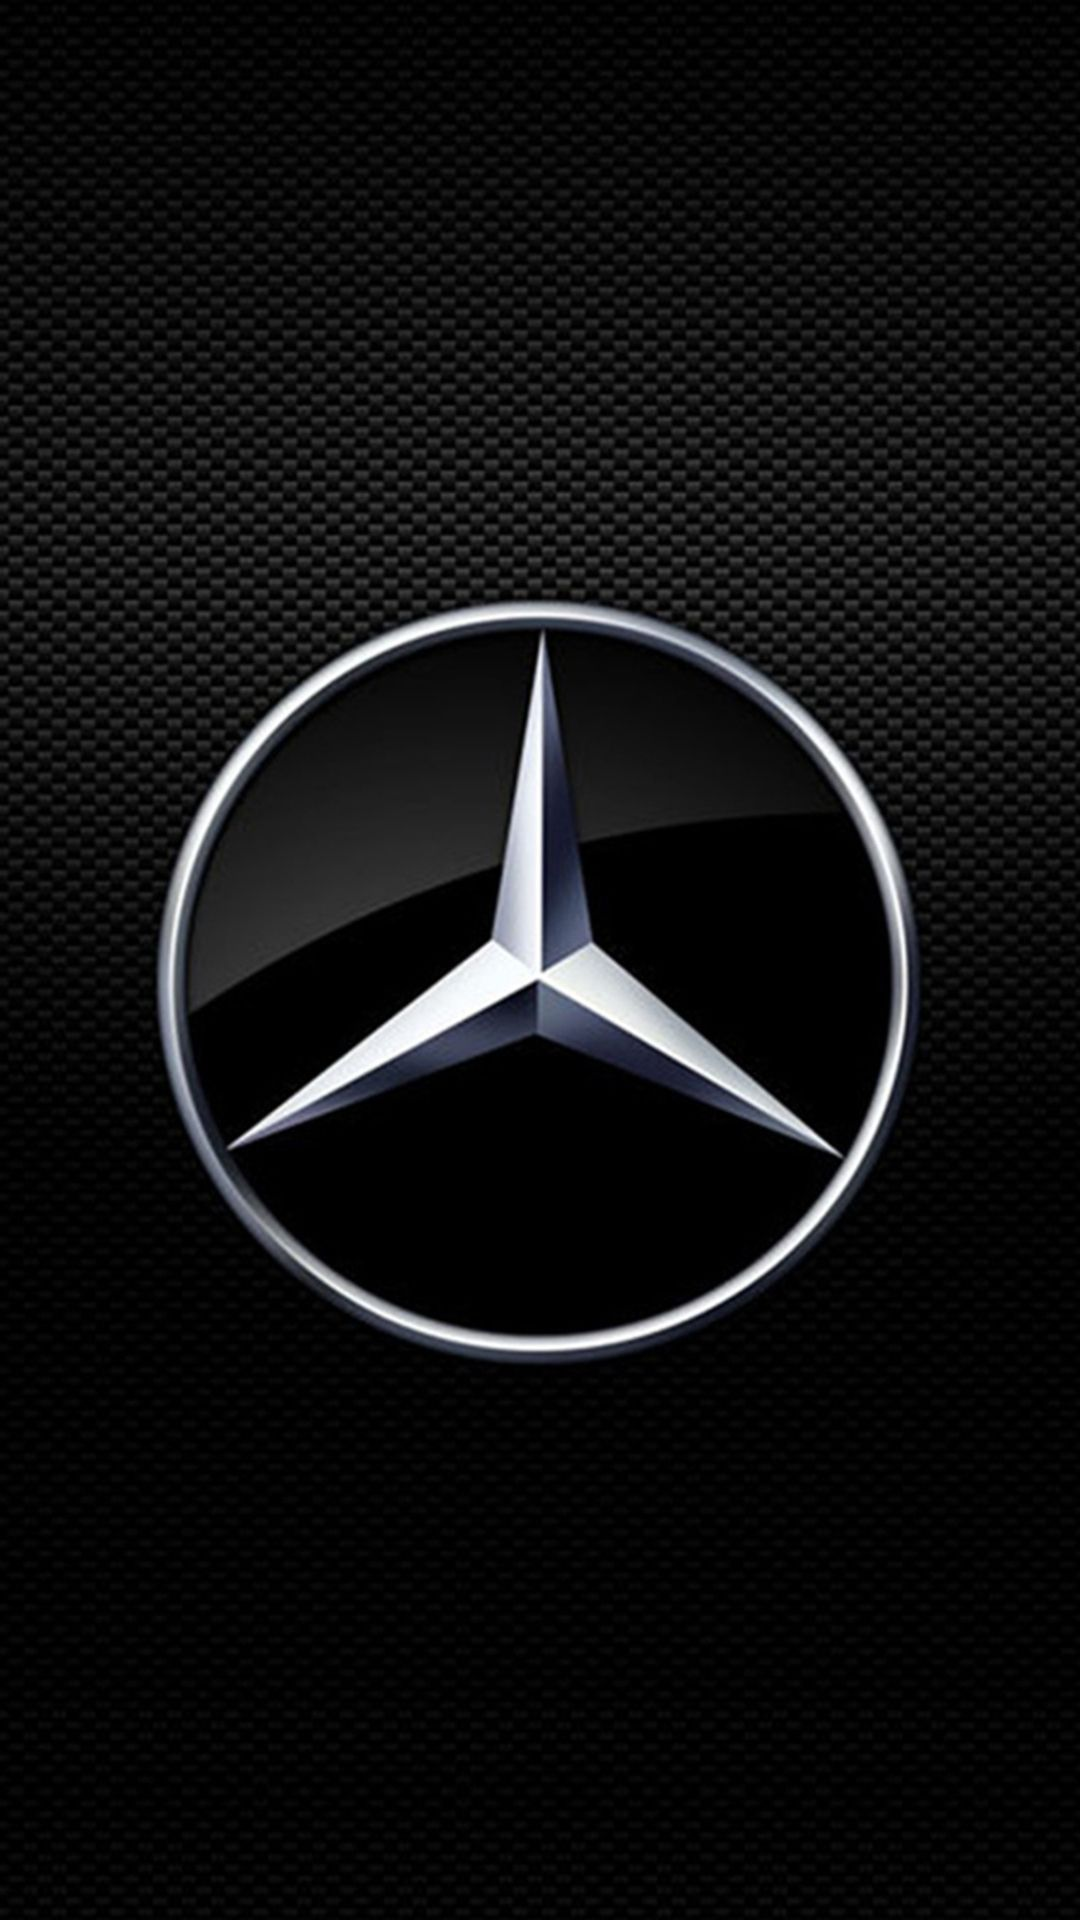 #mercedesbenz #ultimate #quality #symbol #luxury #class #the #and #ofMercedes-Benz symbol, the ultim...